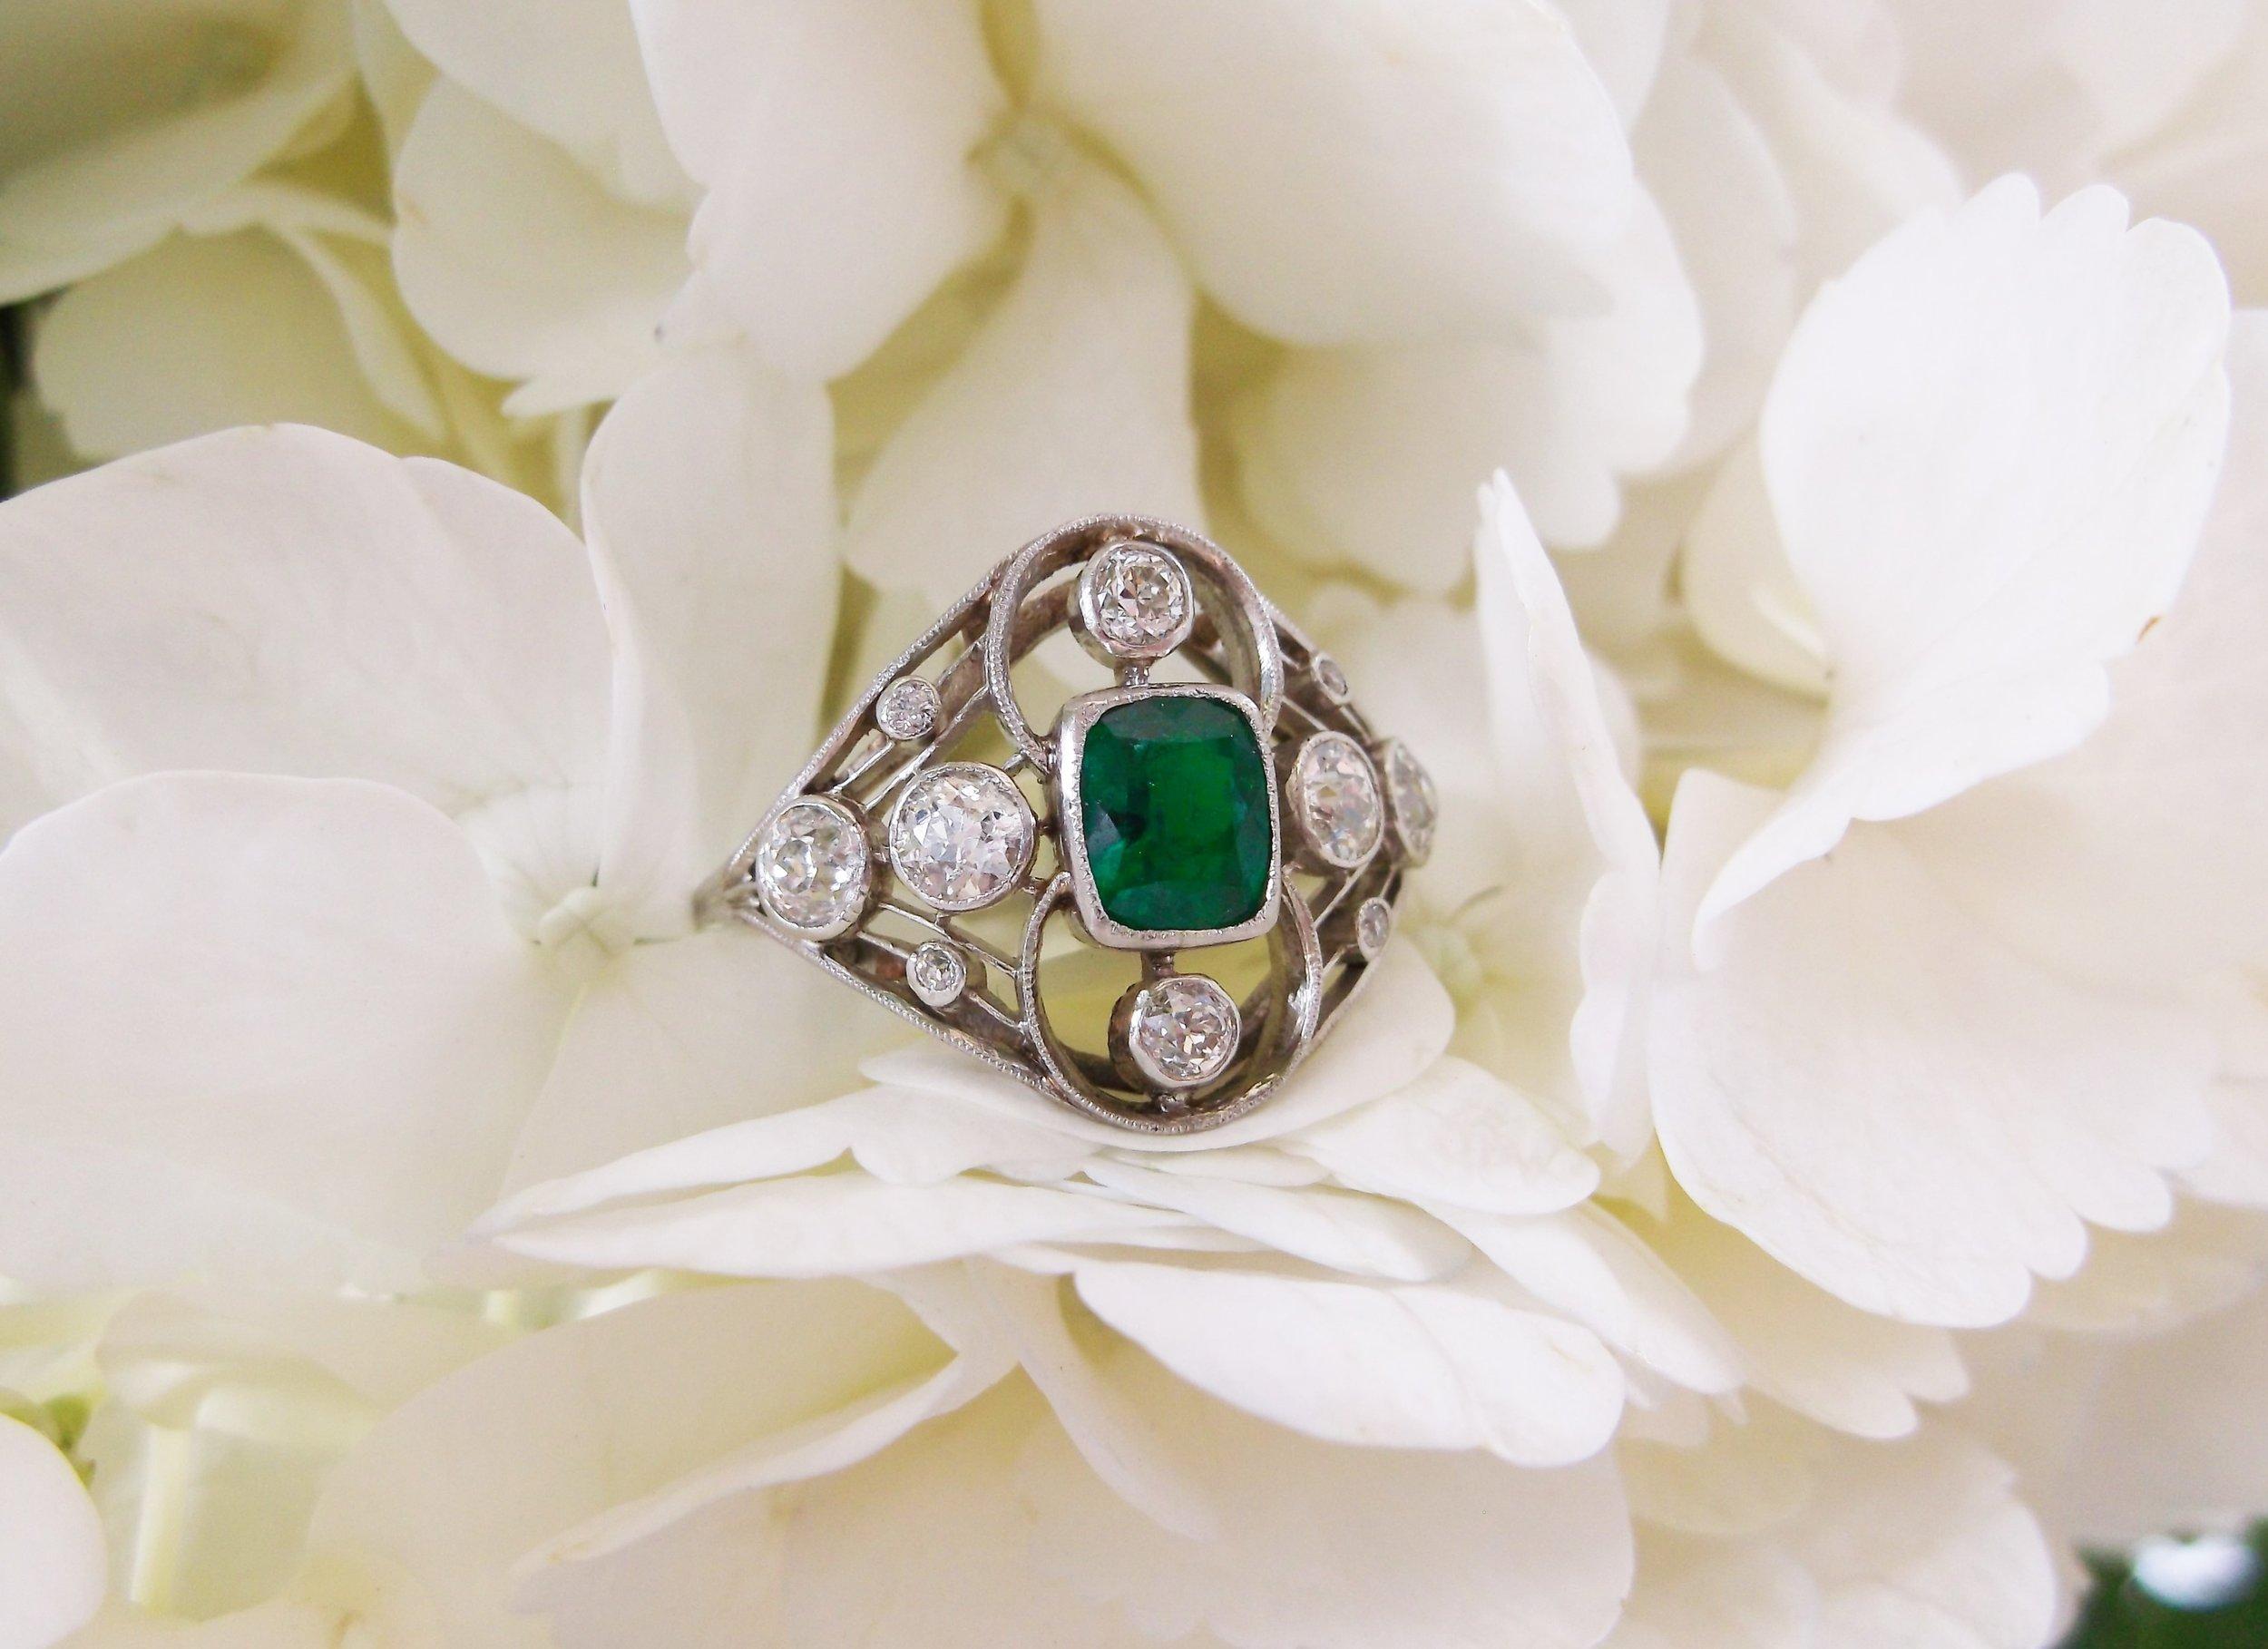 SOLD - Dreamy Edwardian era emerald and Old Mine cut diamond ring set in platinum.